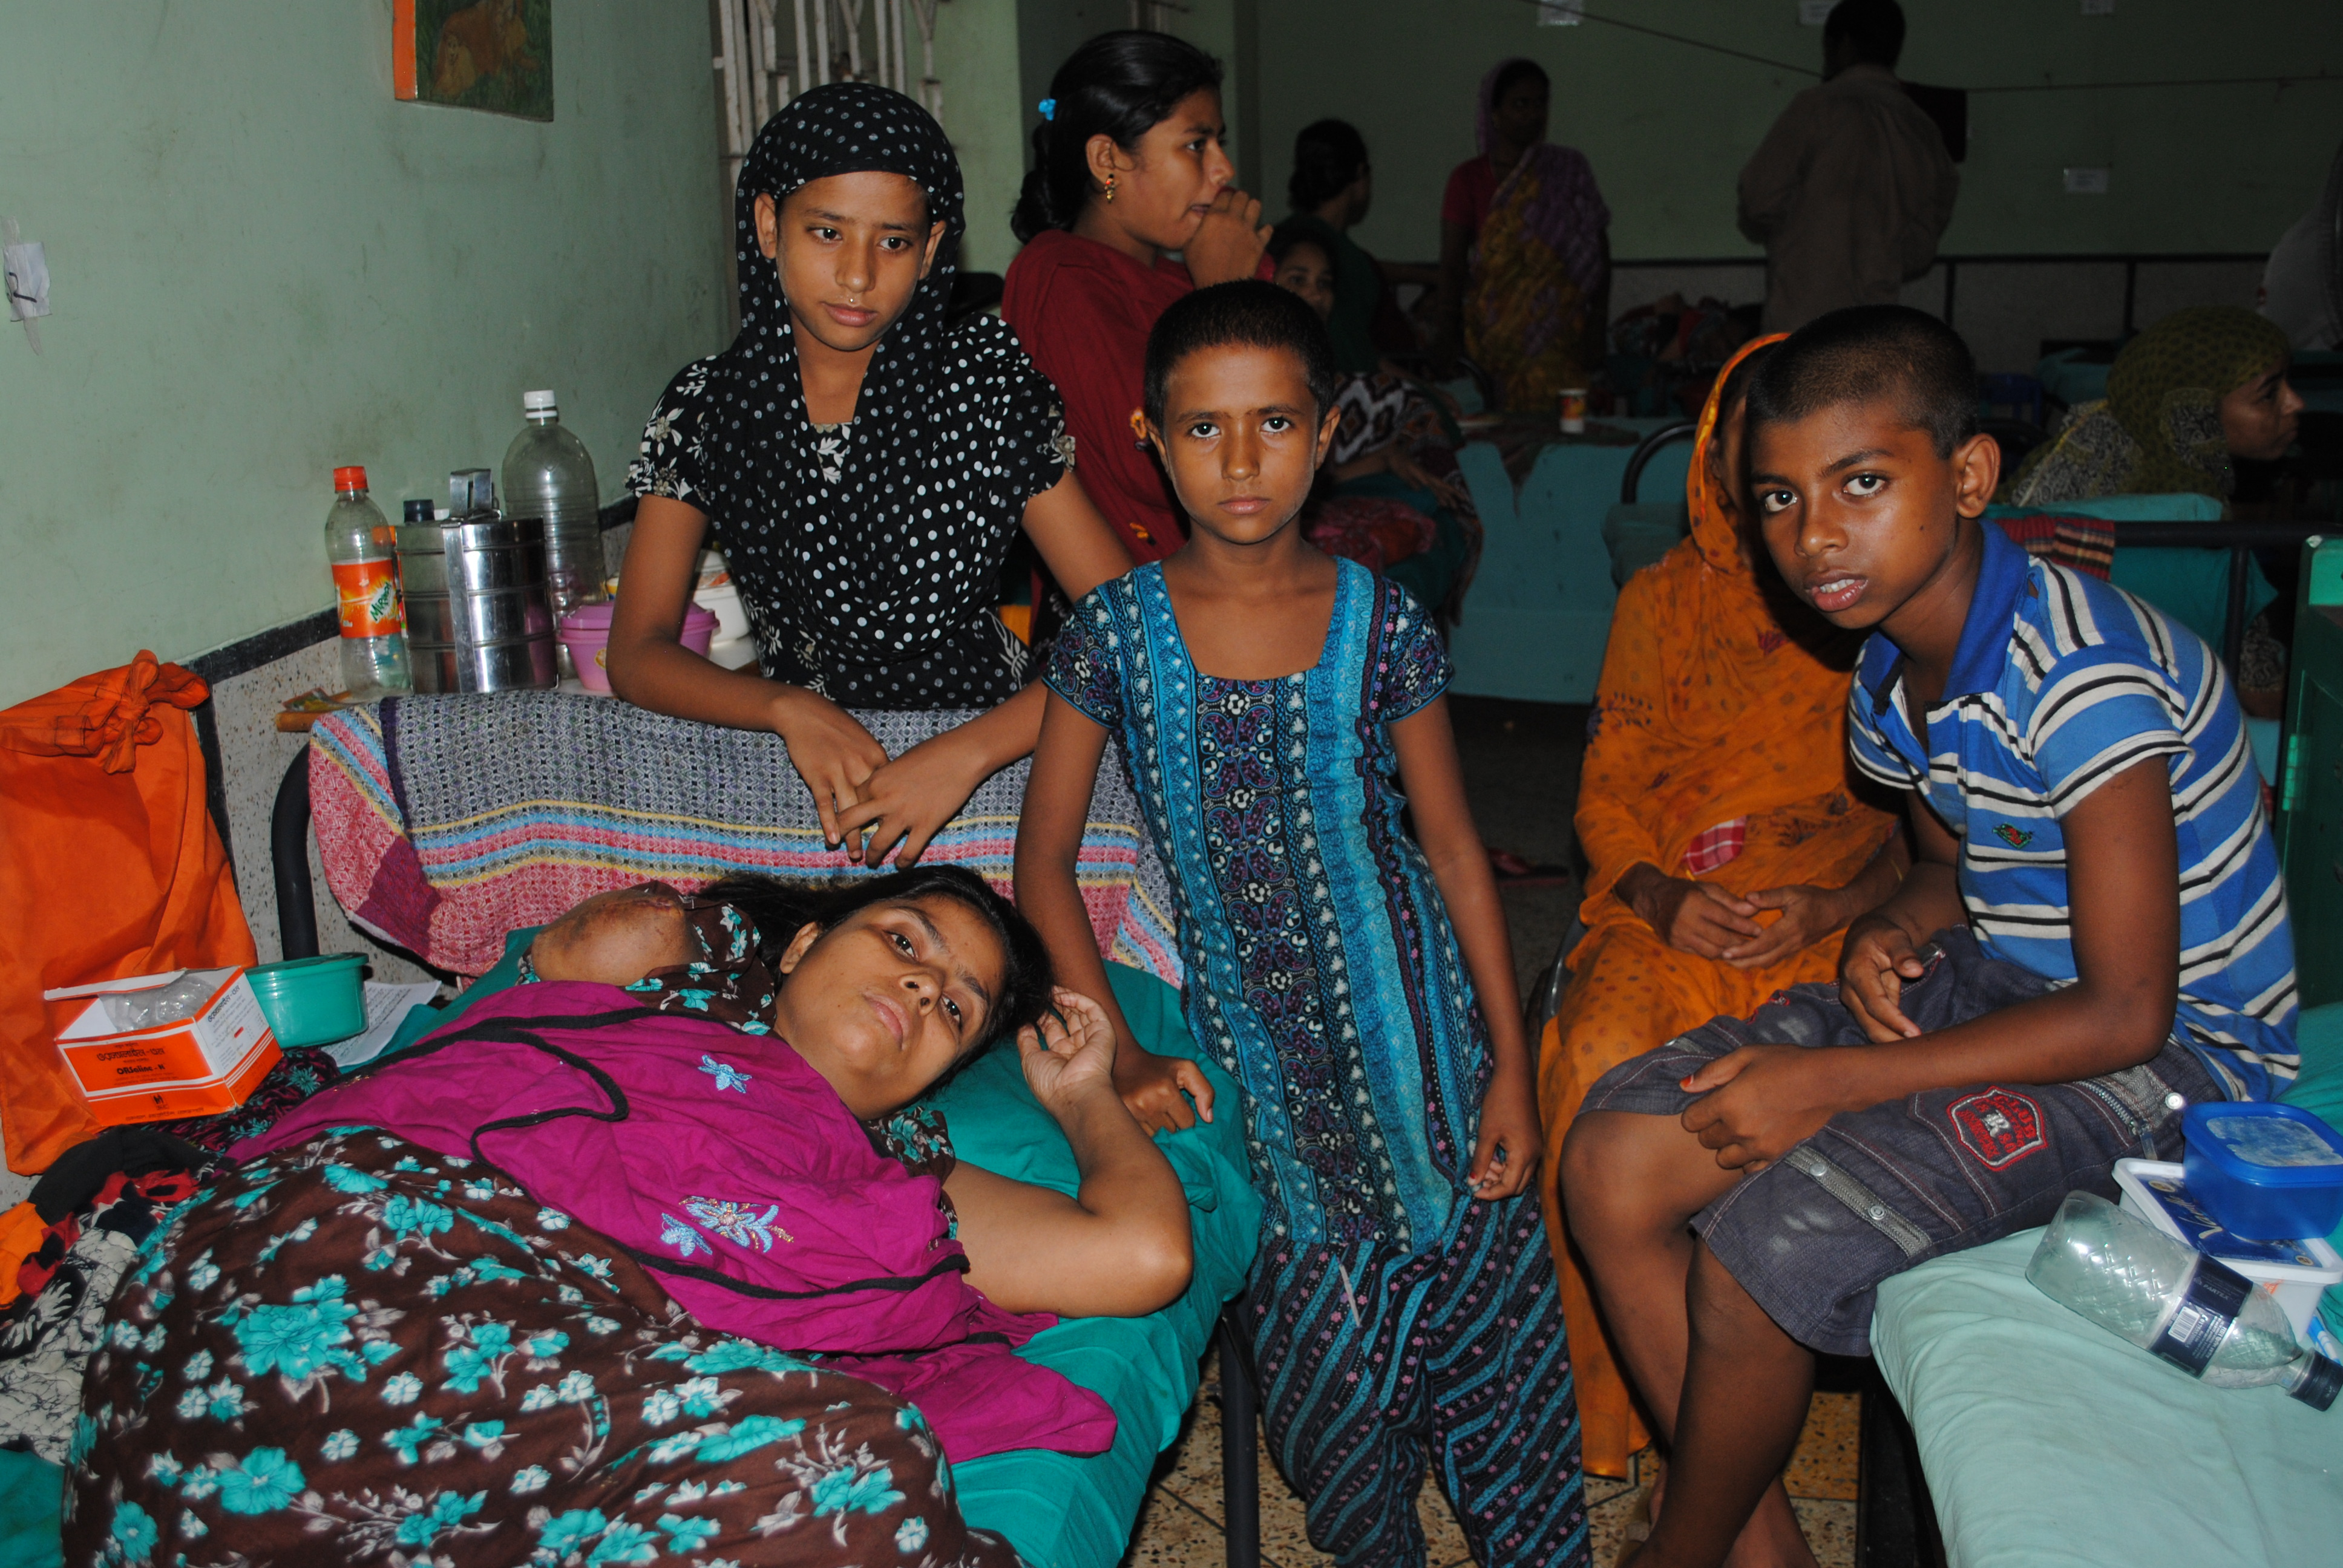 Shilpi with her daughters and nephew whose mother died in Rana Plaza, and who she is now responsible for taking care of